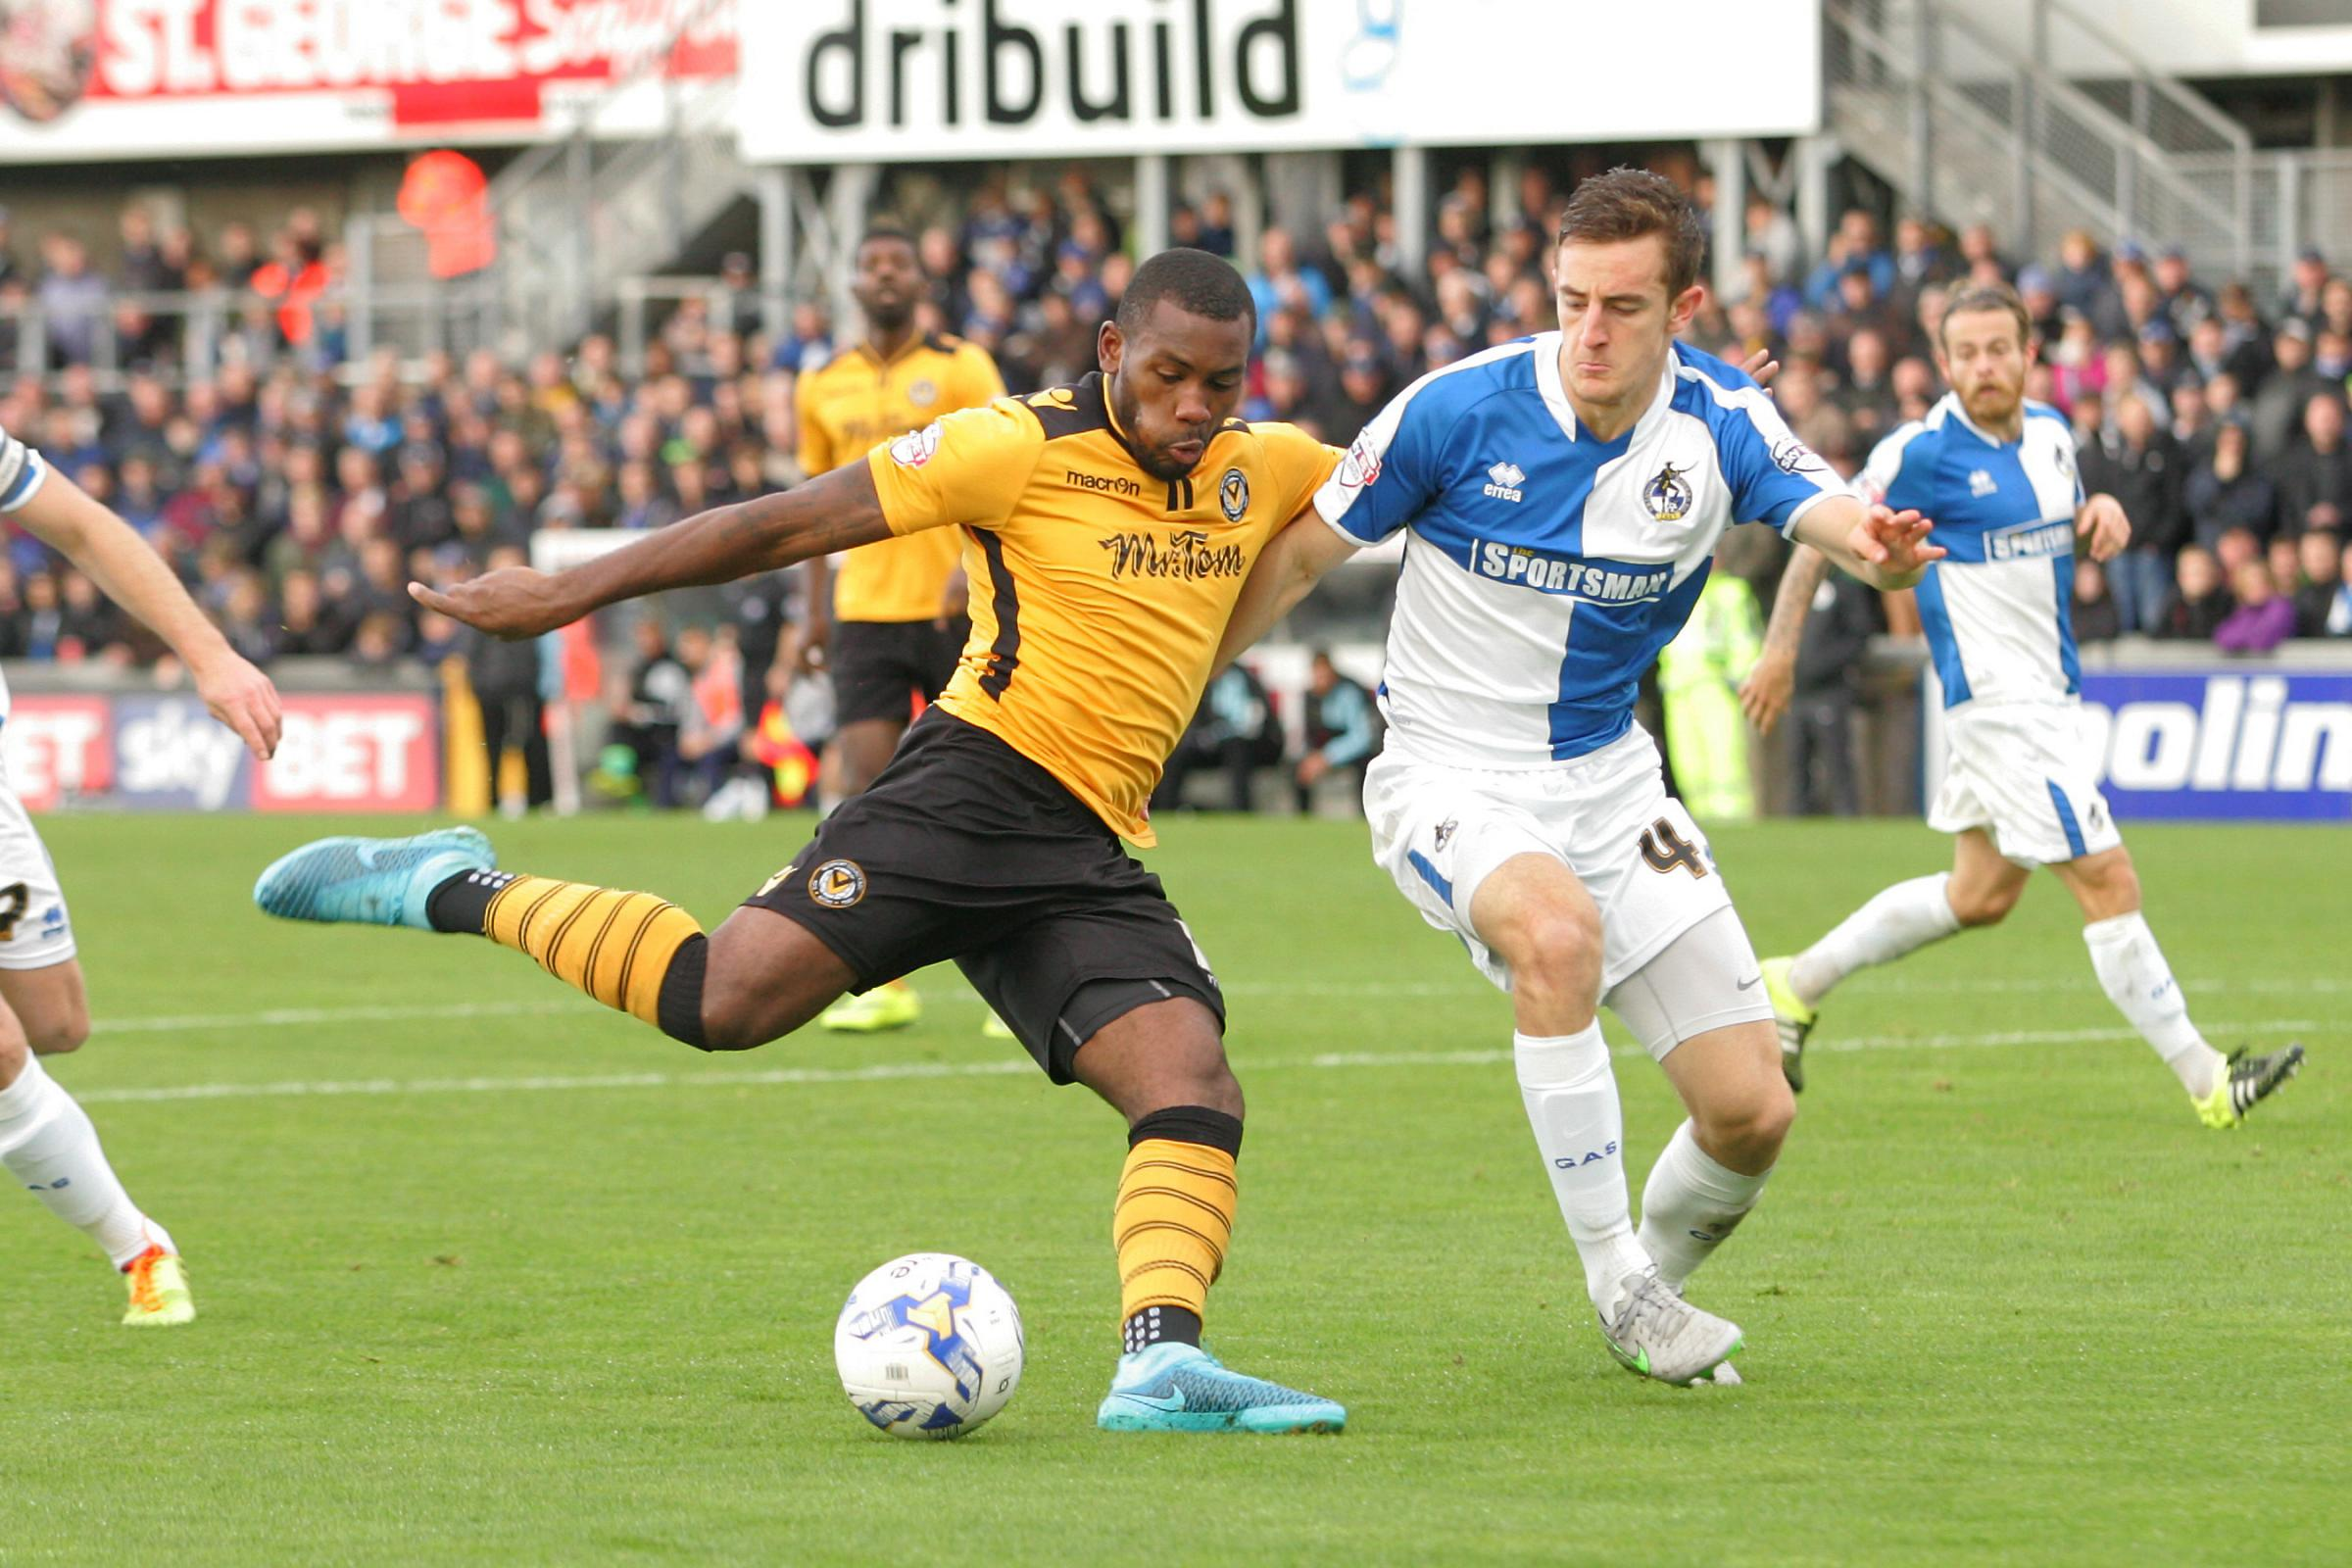 DERBY: Lenell John-Lewis in action for Newport County against Bristol Rovers earlier this season